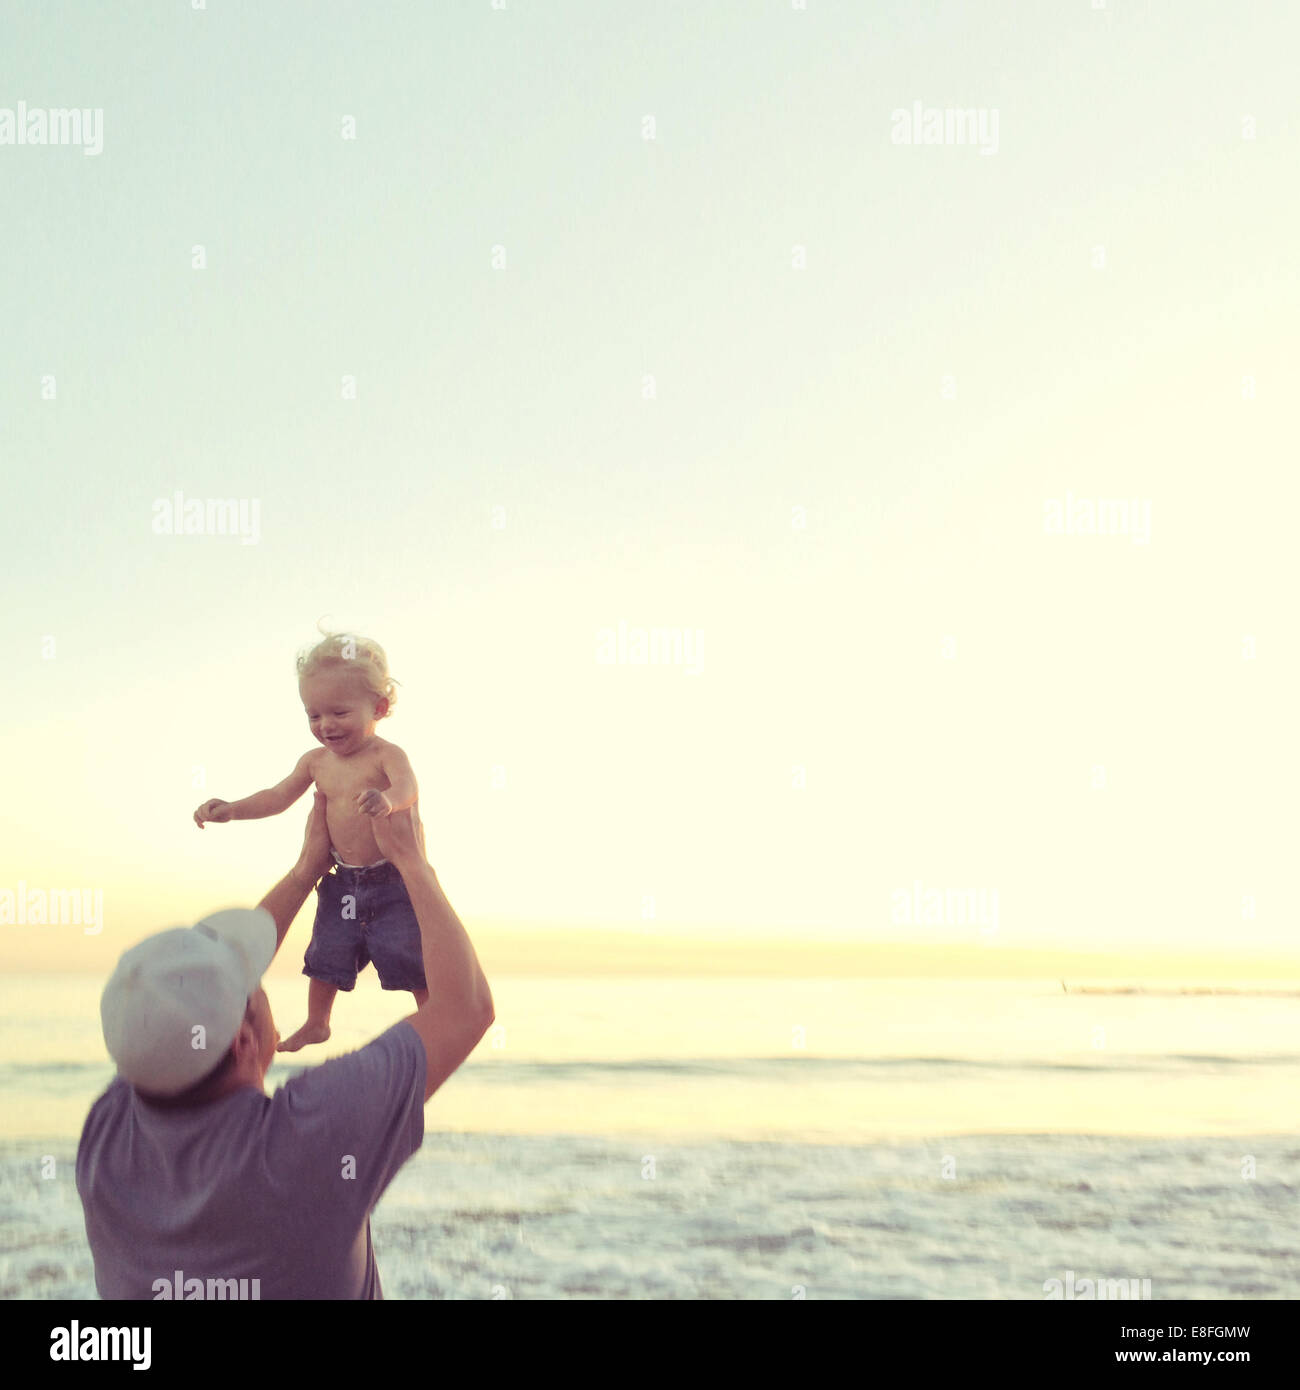 Father lifting his baby son in the air at the beach, california, america, USA - Stock Image